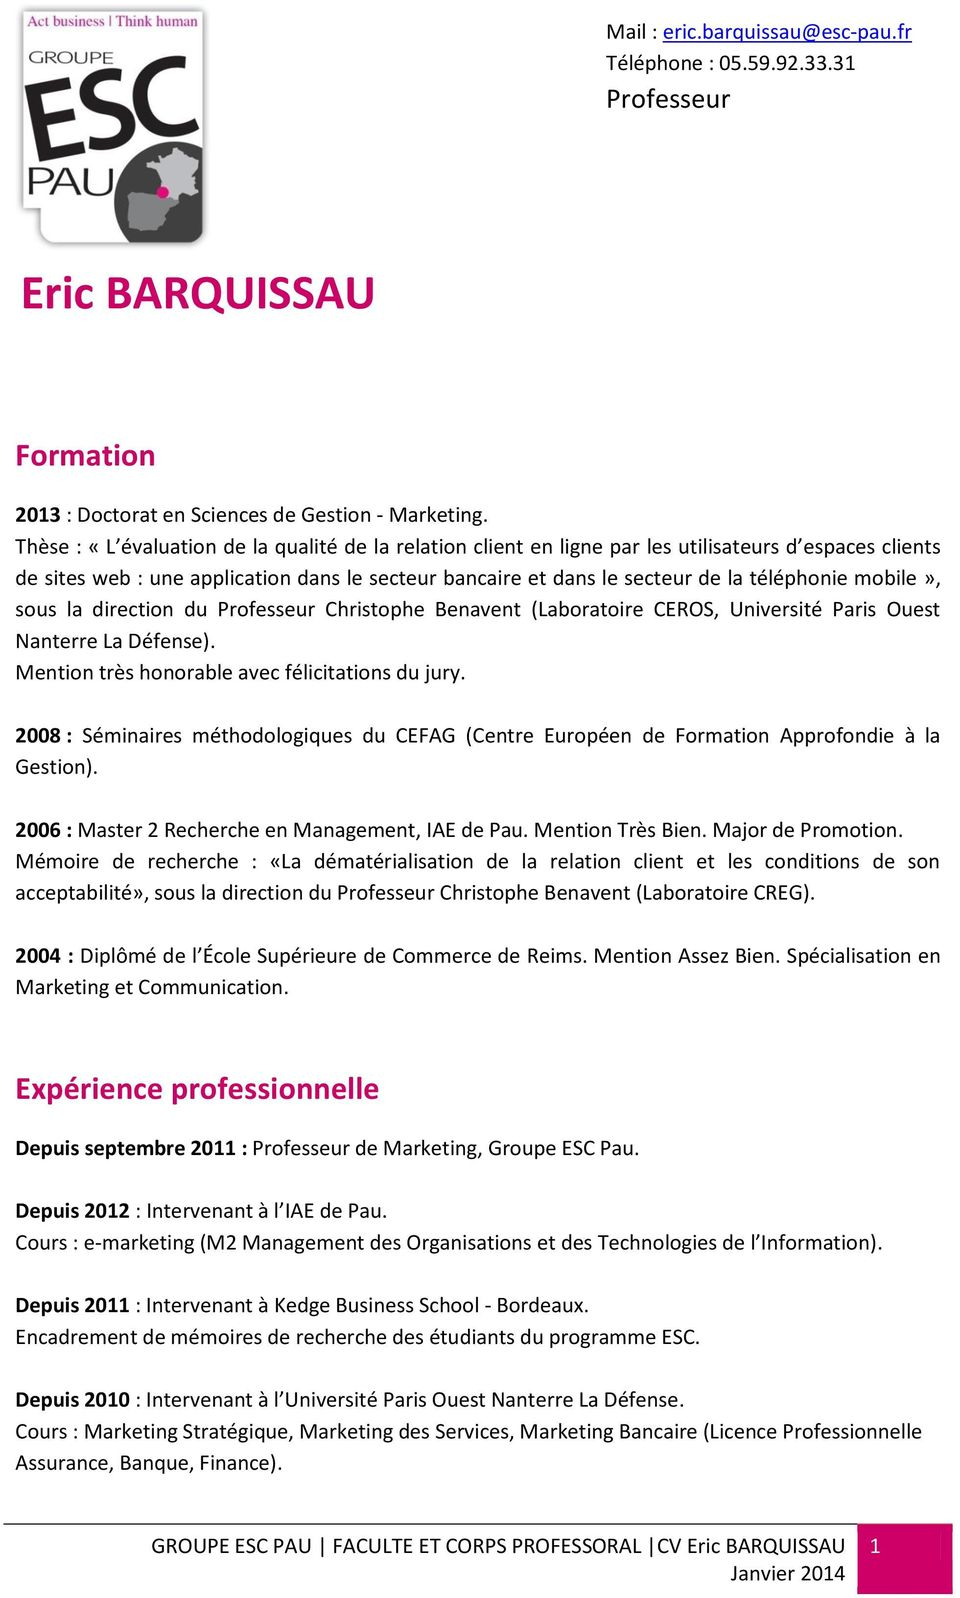 mobile», sous la direction du Professeur Christophe Benavent (Laboratoire CEROS, Université Paris Ouest Nanterre La Défense). Mention très honorable avec félicitations du jury.